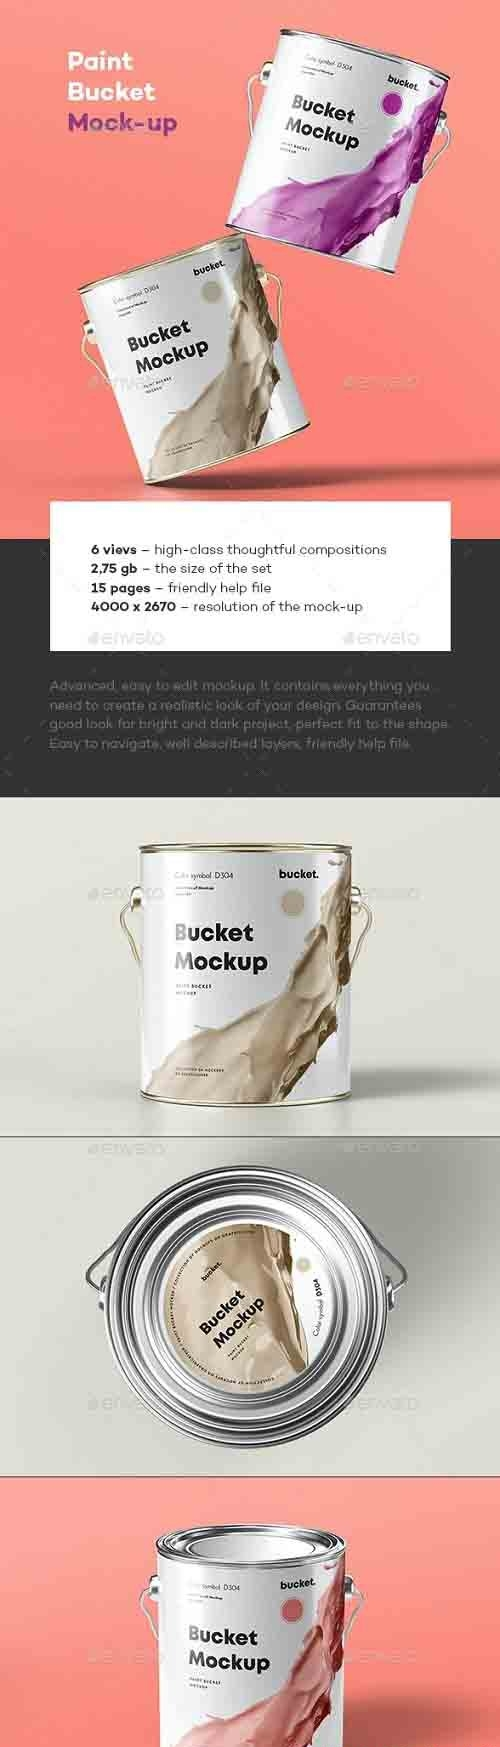 GraphicRiver - Paint Bucket Mock-up 30743922